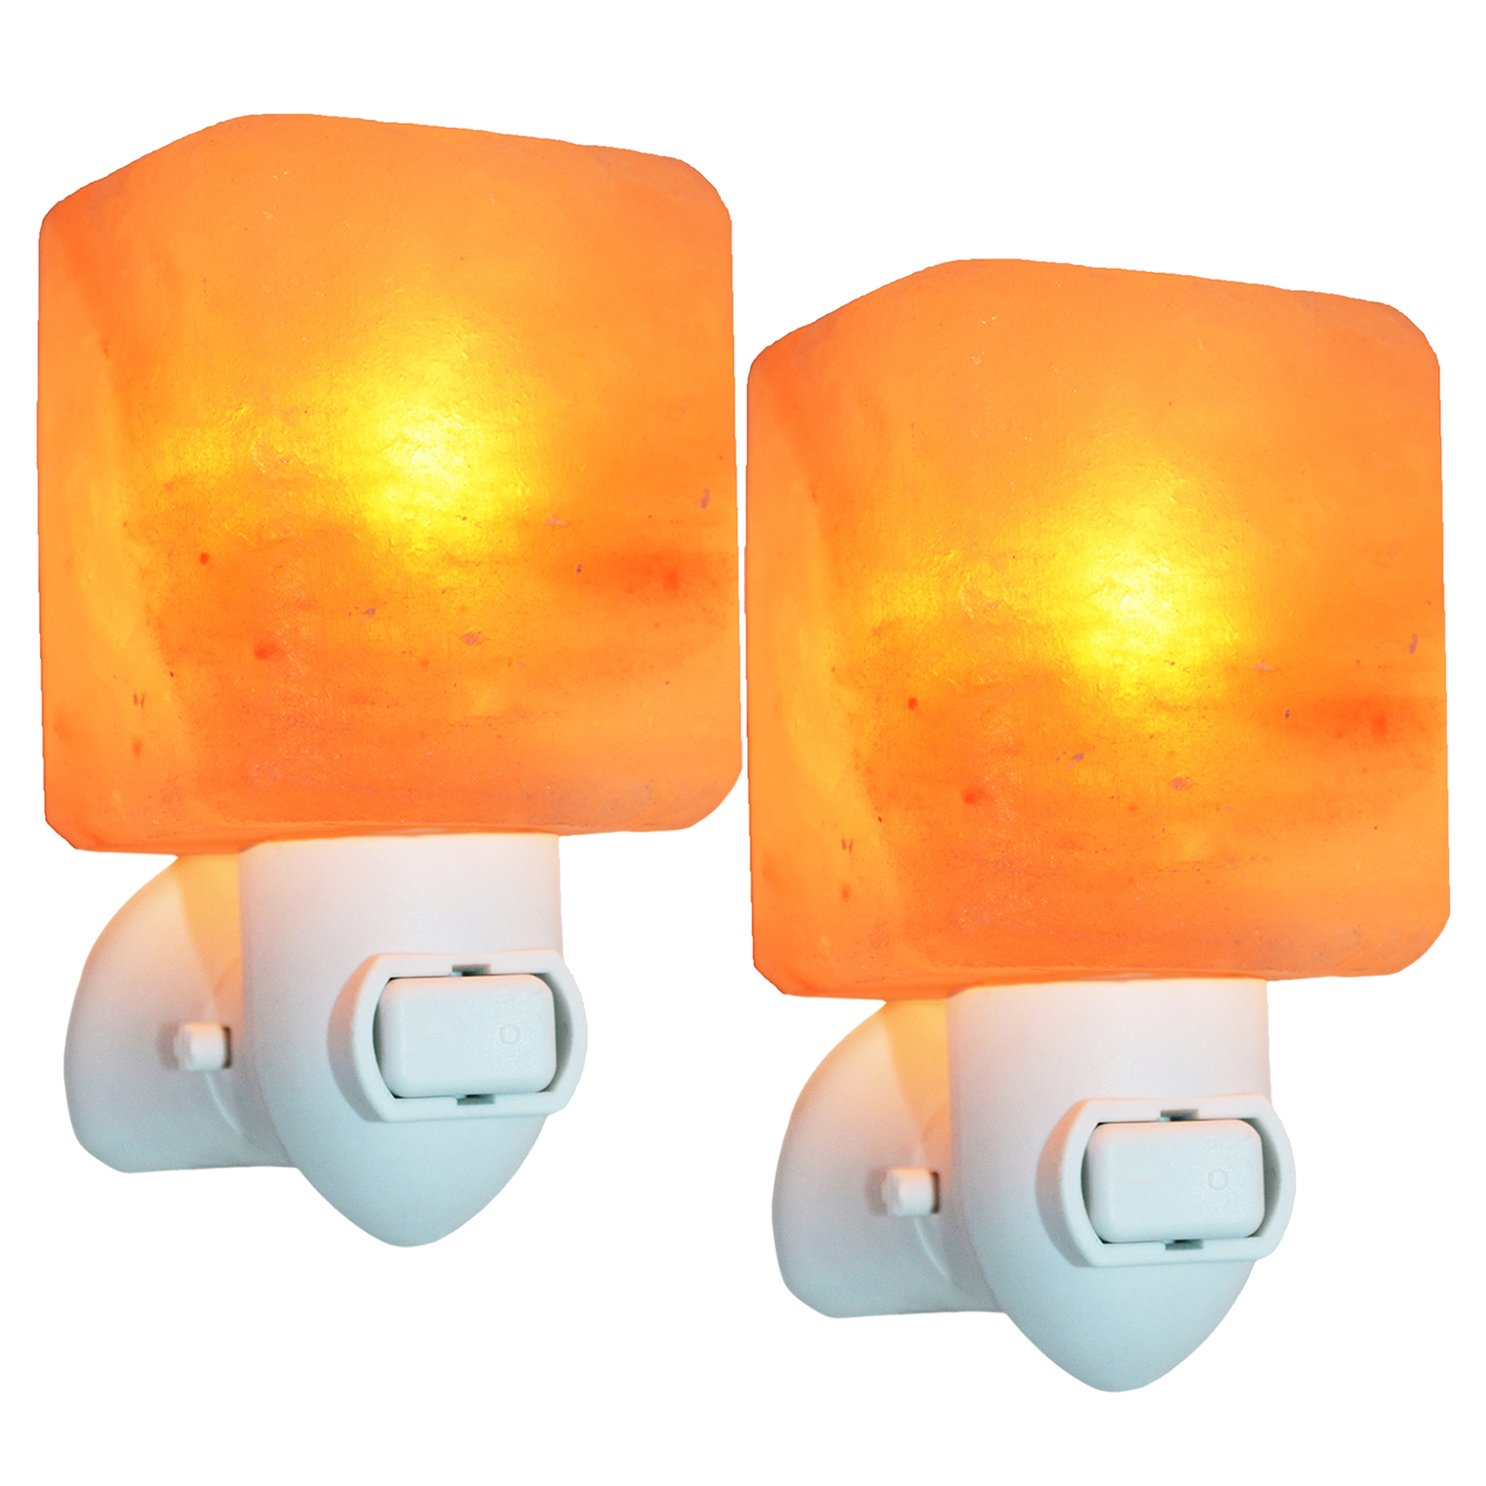 MaymiiHome 2 Pack Cube Mini Himalayan Salt Night Light Plug in Wall Lamps Night Light Crystal Salt Lamp Natural Air Purifier and Soft Night Light for Living Dining Bed Room and Office